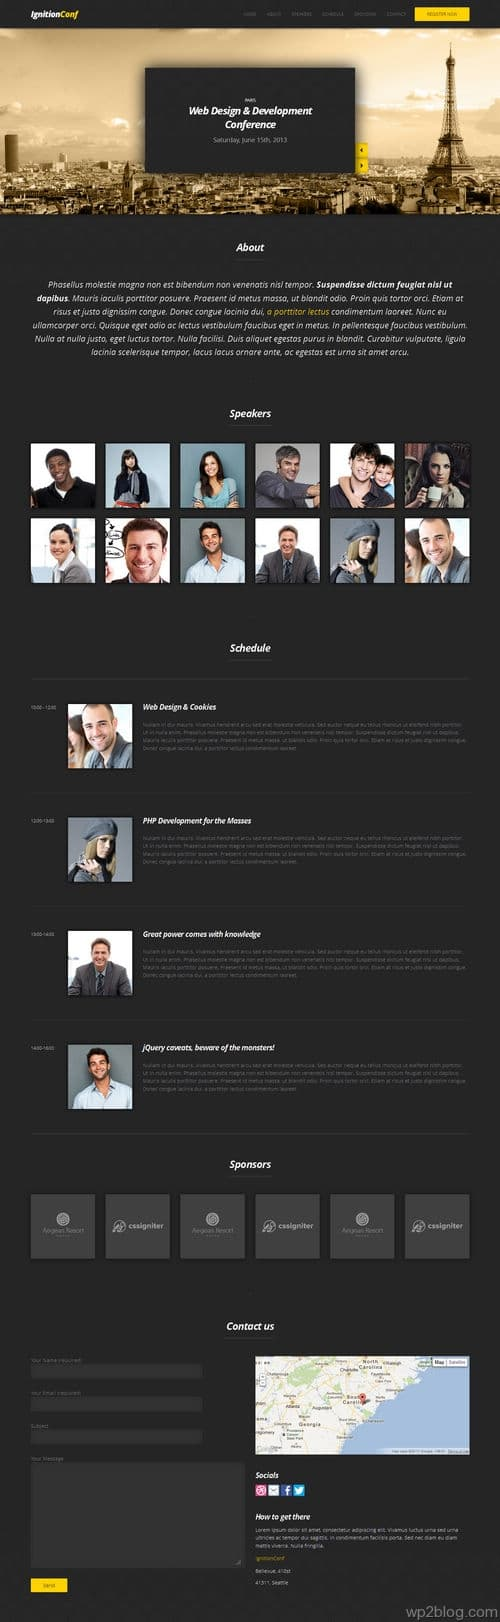 IgnitionConf WordPress Theme